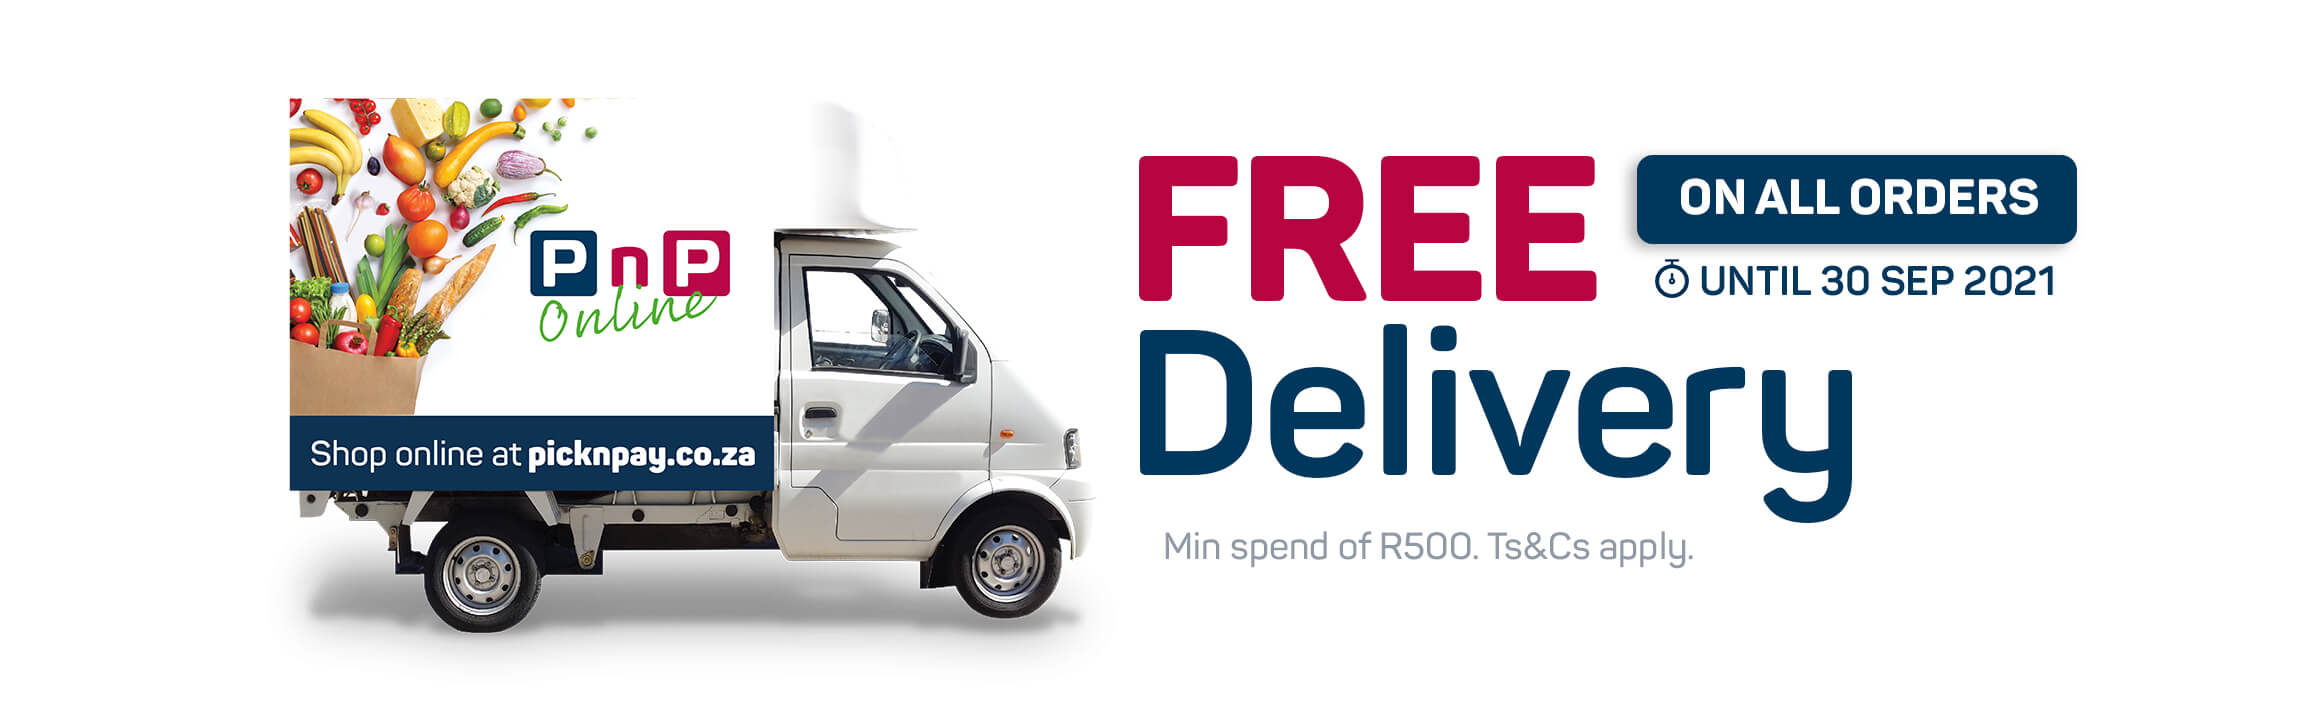 Free delivery on all orders until 30 September 2021